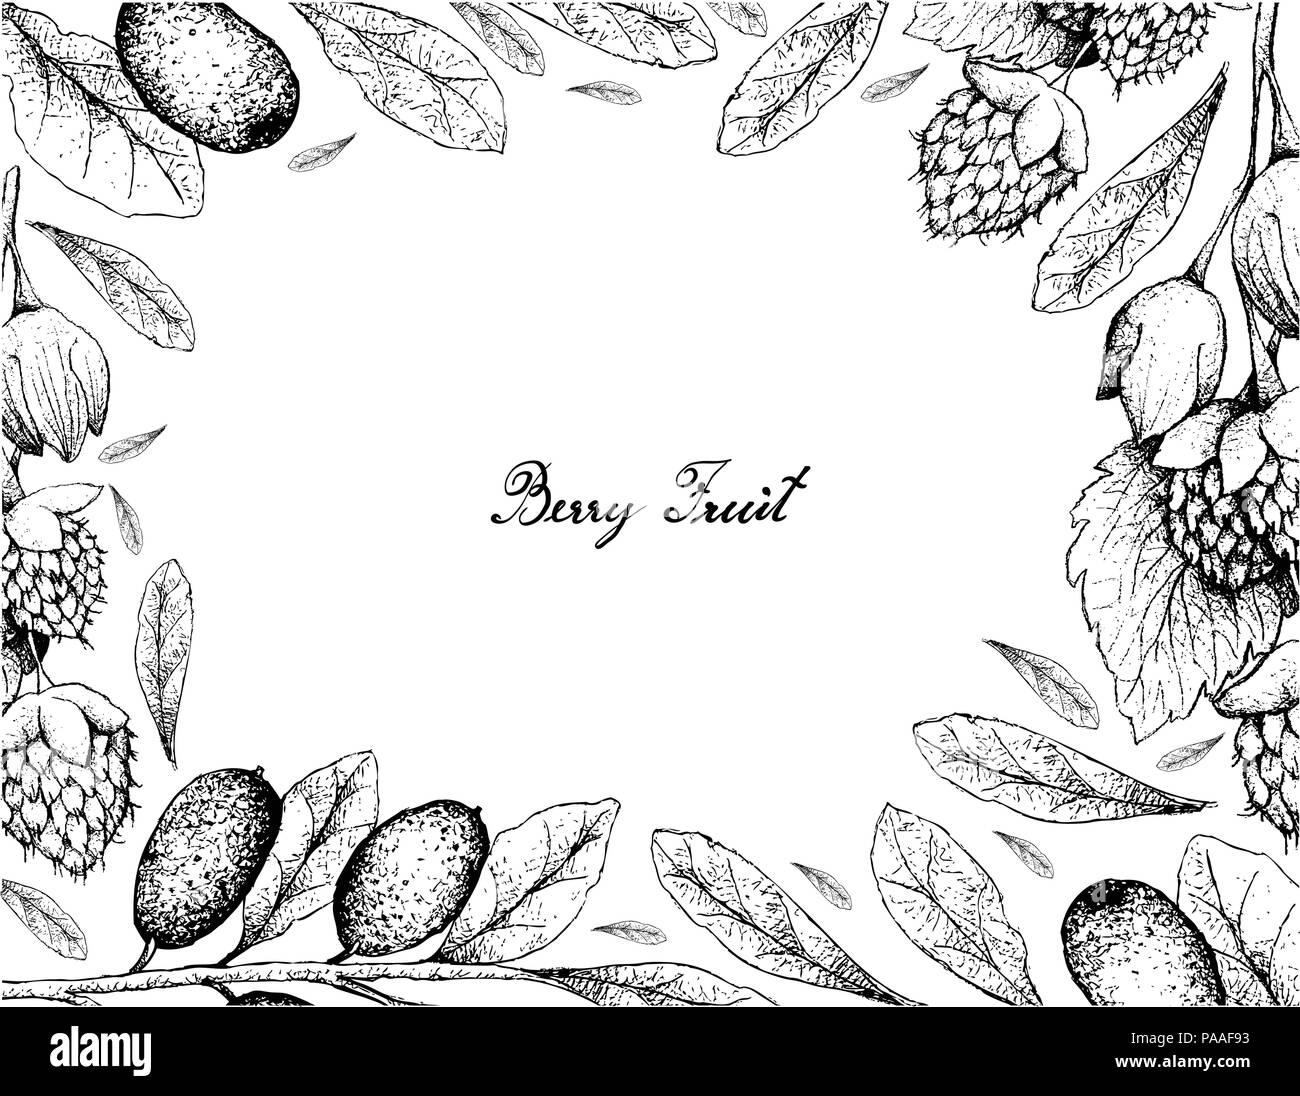 Tropical Fruits, Illustration Frame of Hand Drawn Sketch Fresh Elaeagnus Ebbingei, Oleaster or Ebbings Silverberry and Golden Himalayan Raspberries or - Stock Vector